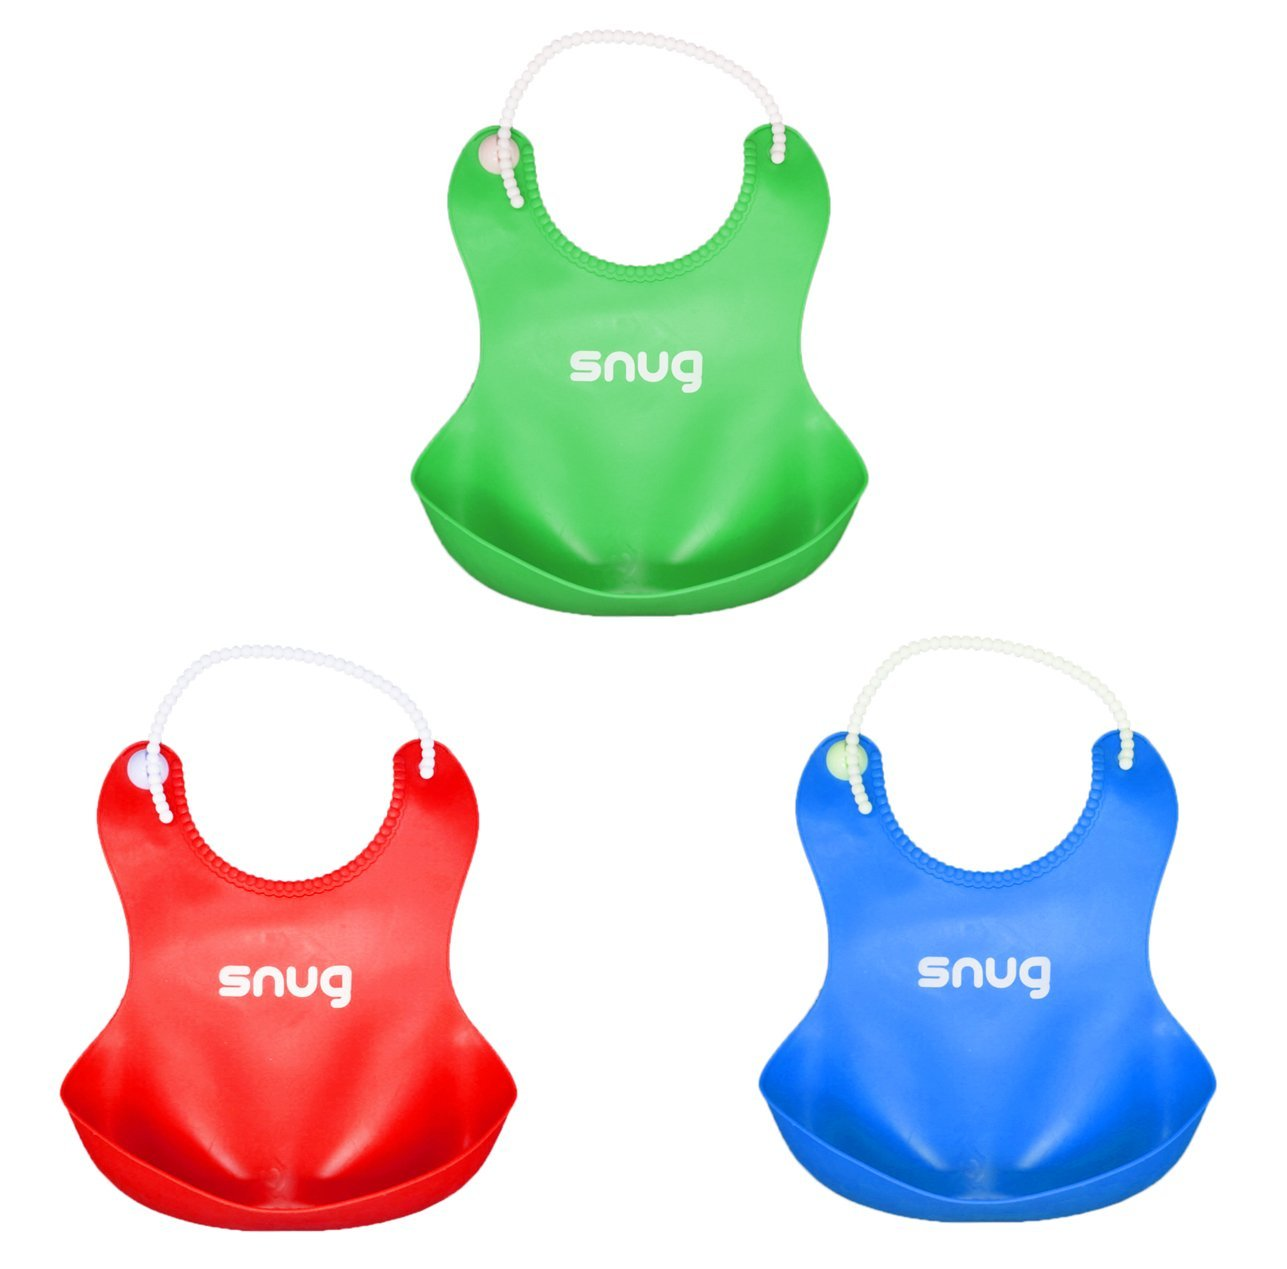 Snug Silicone Baby Bibs 3 Pack